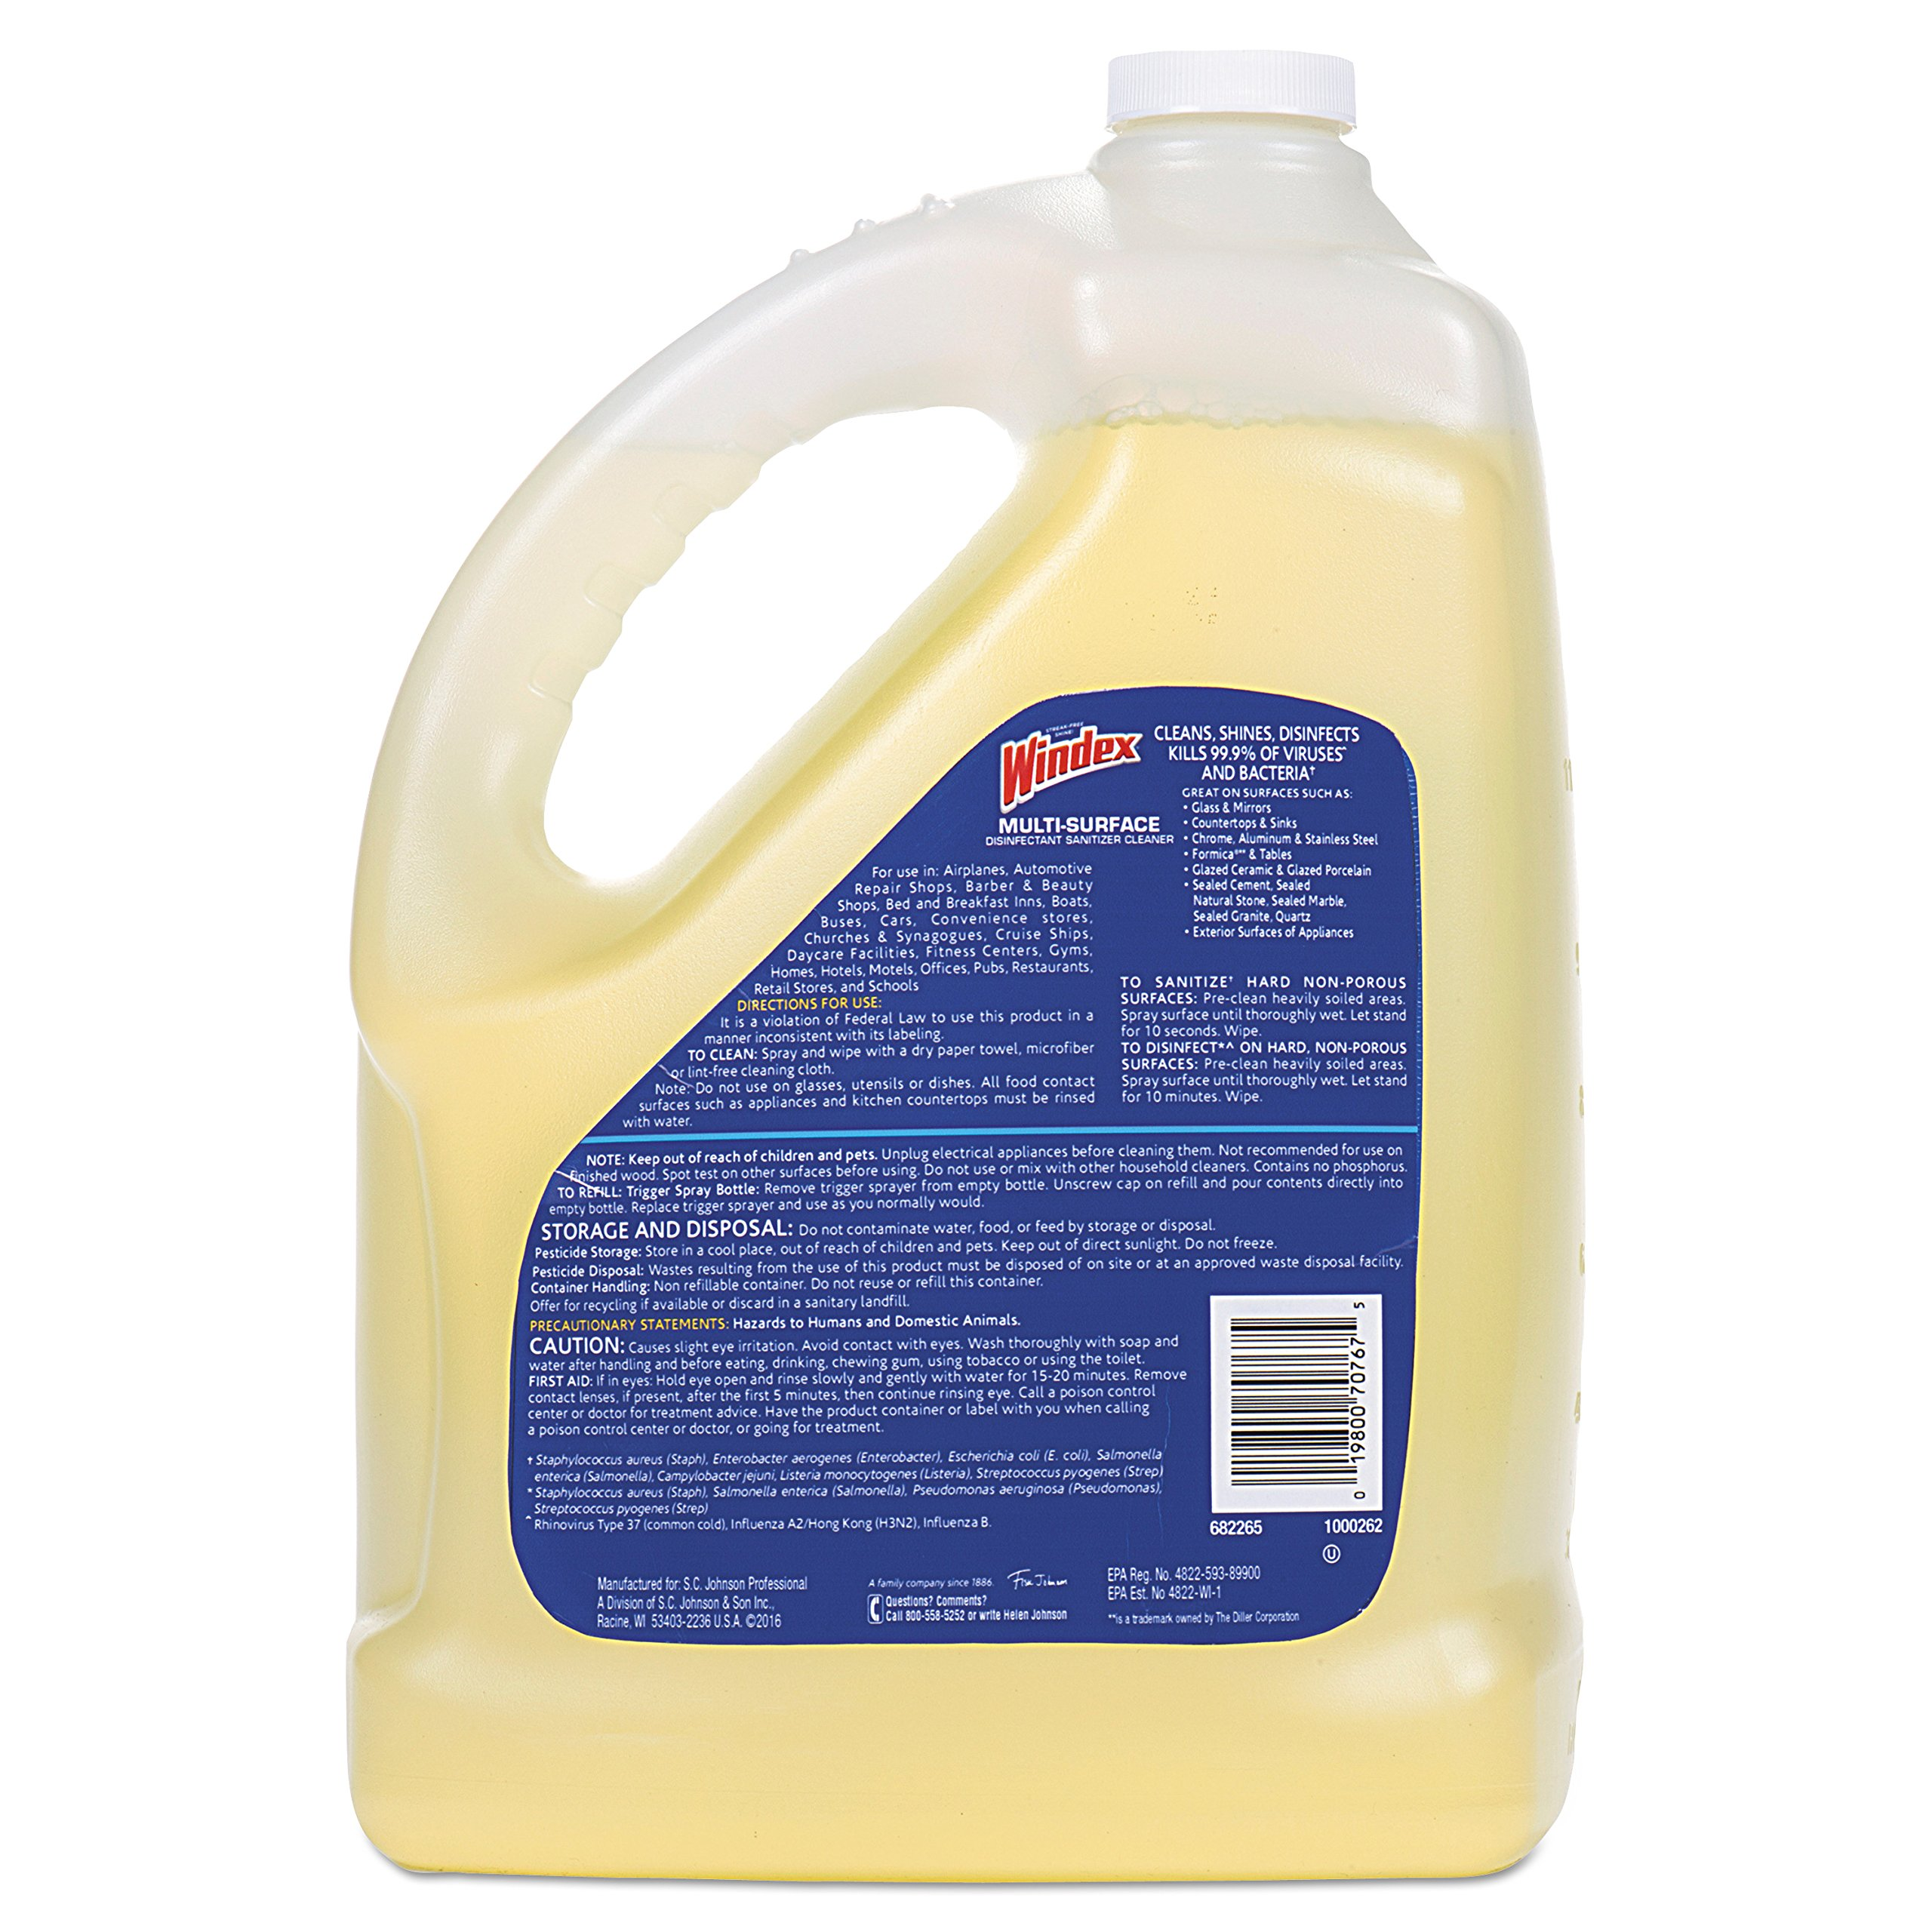 Windex 657067 T Multi-Surface Disinfectant Cleaner, Citrus, 1 gal Bottle (Case of 4) by Windex (Image #4)